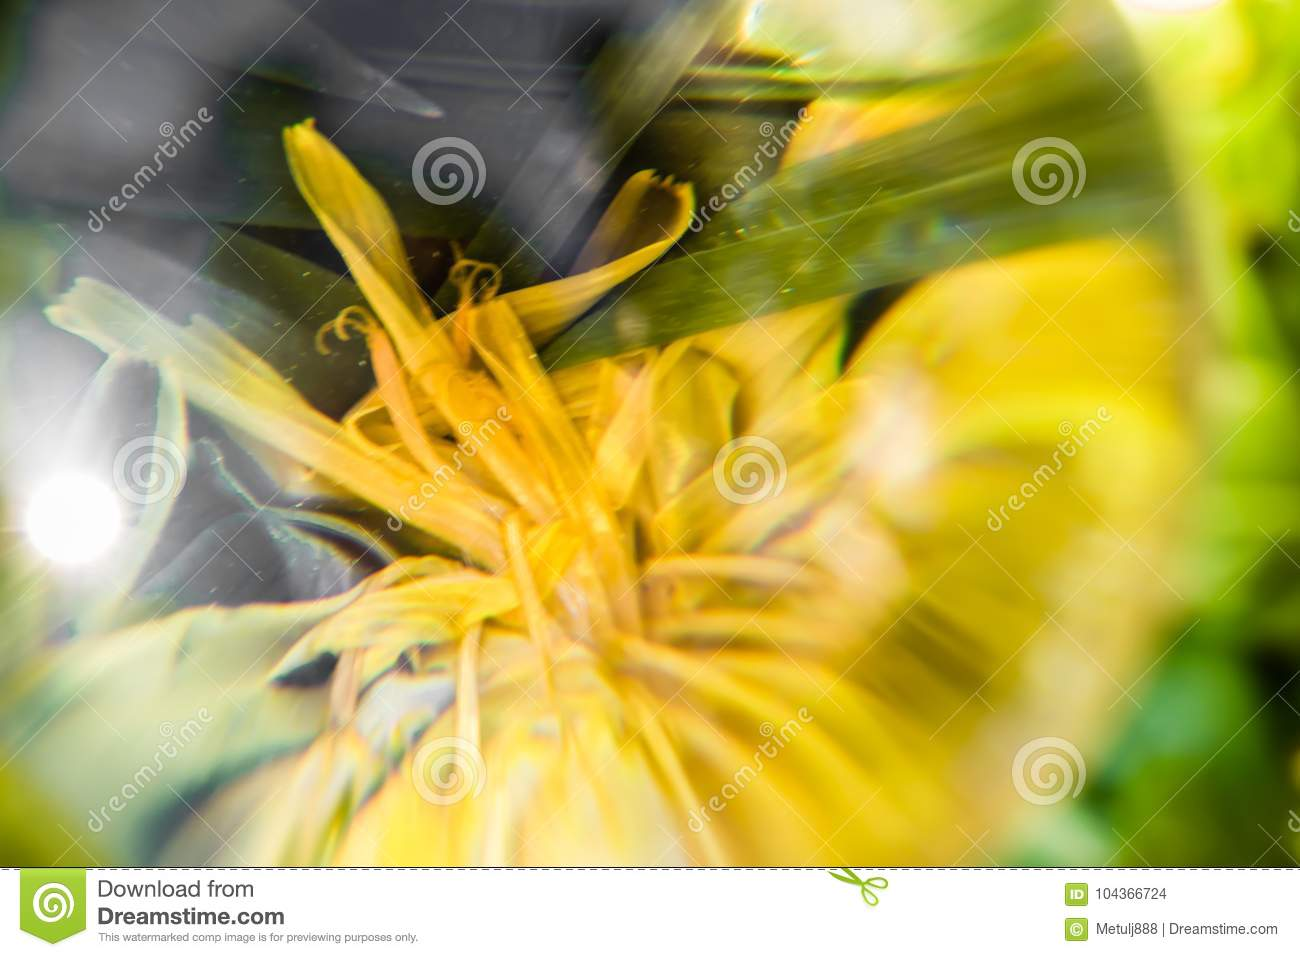 Close up macro view through lens ball of yellow flower petals in close up macro view through lens ball of yellow flower petals in abstract green background mightylinksfo